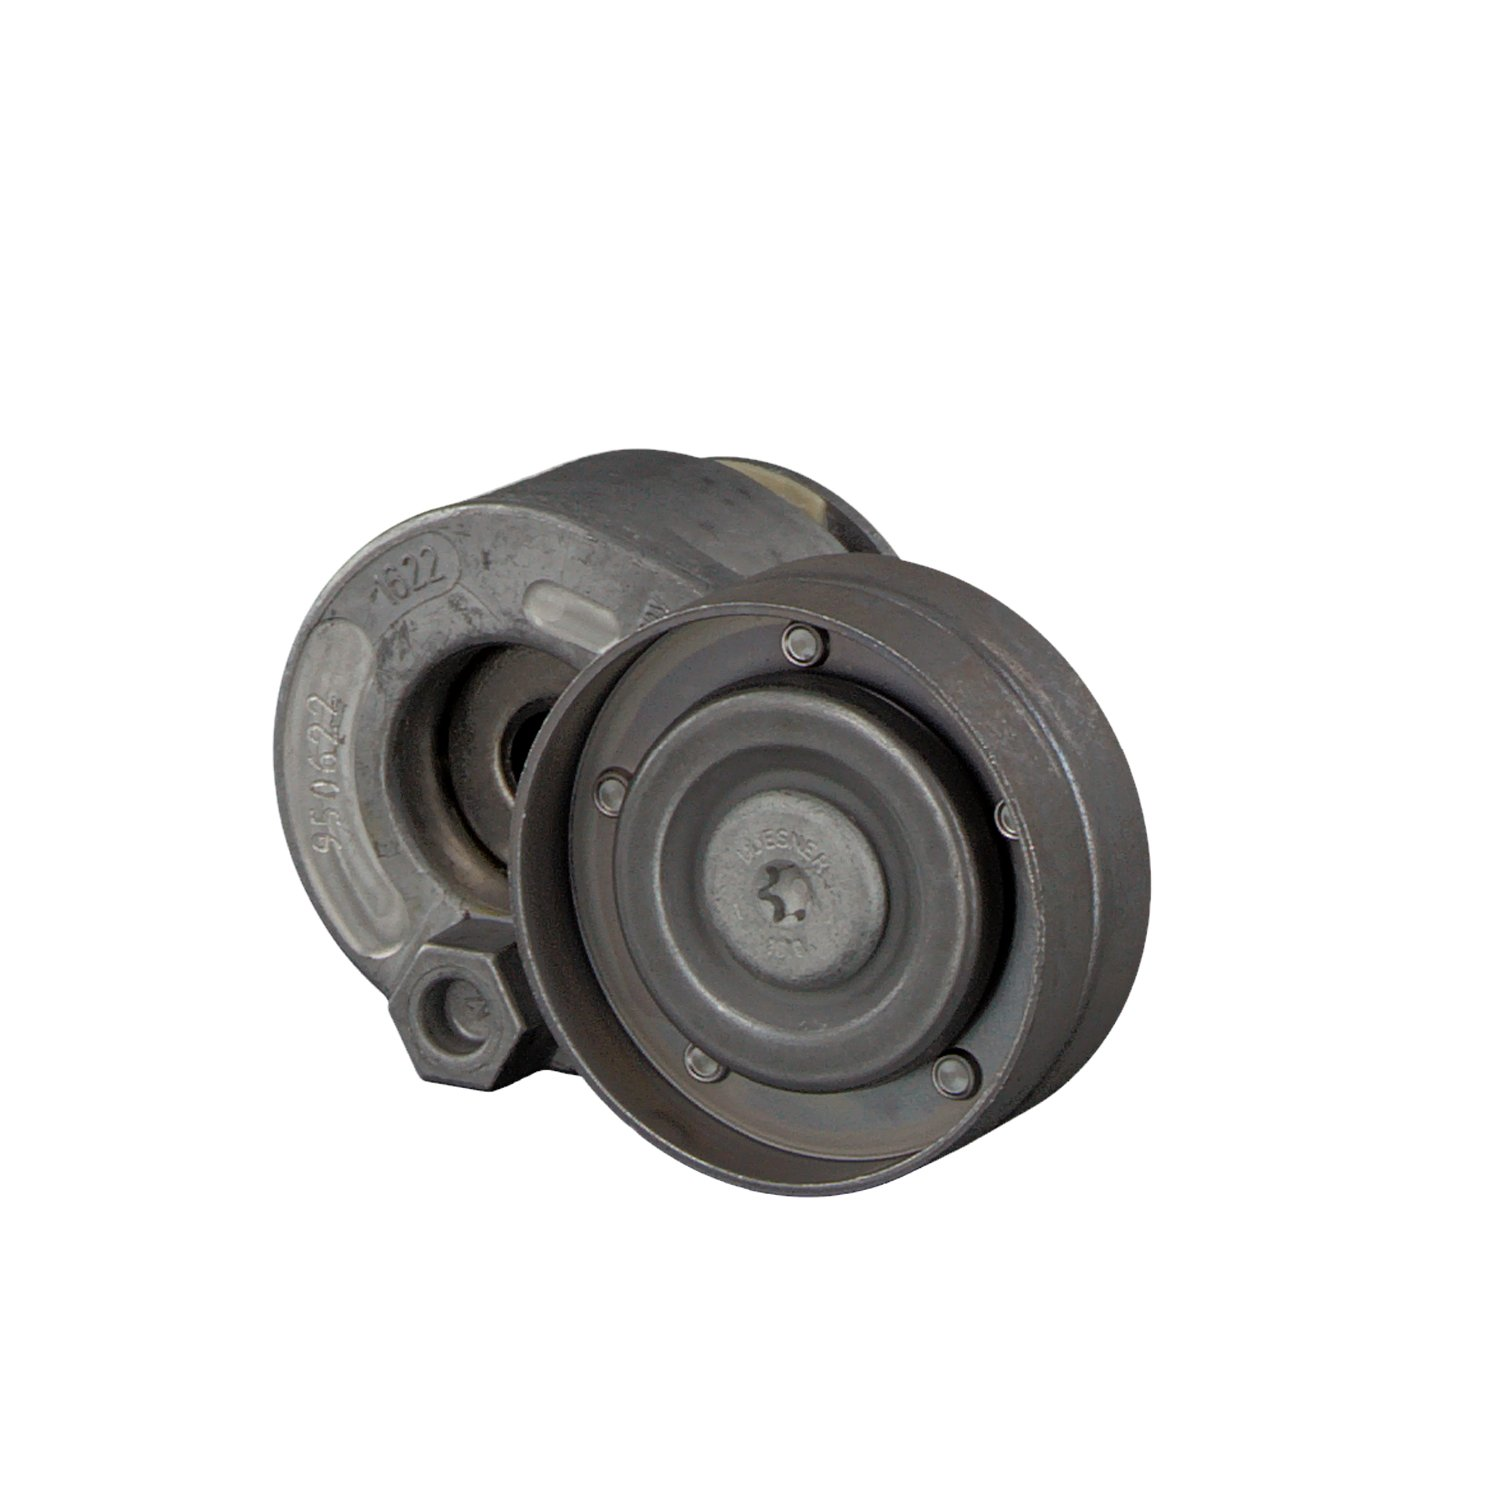 febi bilstein 32581 Tensioner Assembly for auxiliary belt pack of one